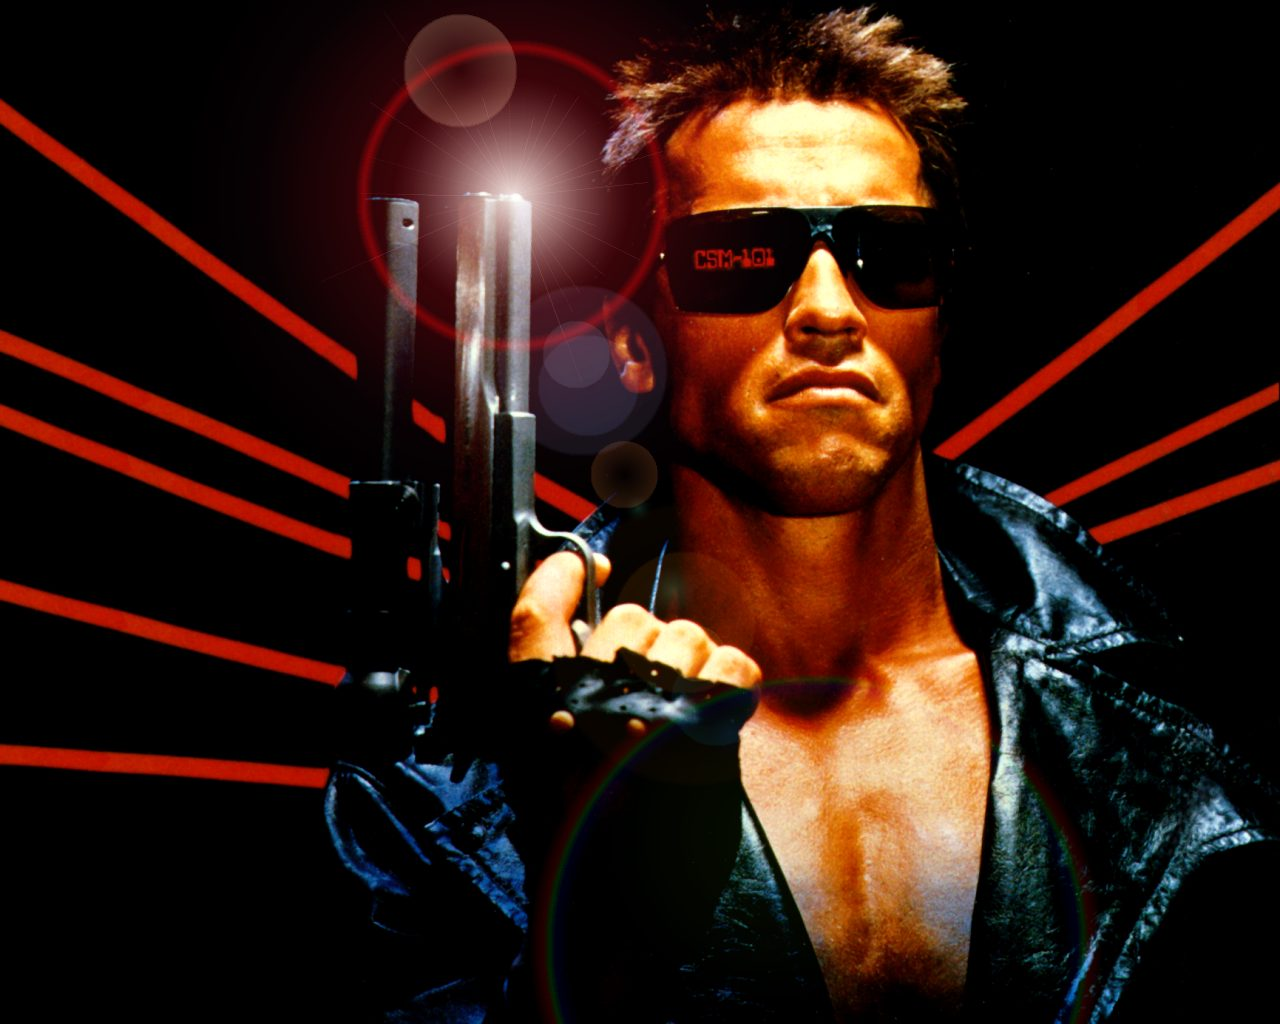 Arnold Schwarzenegger & TERMINATOR is coming back!!! (rumored) Arnold Schwarzenegger